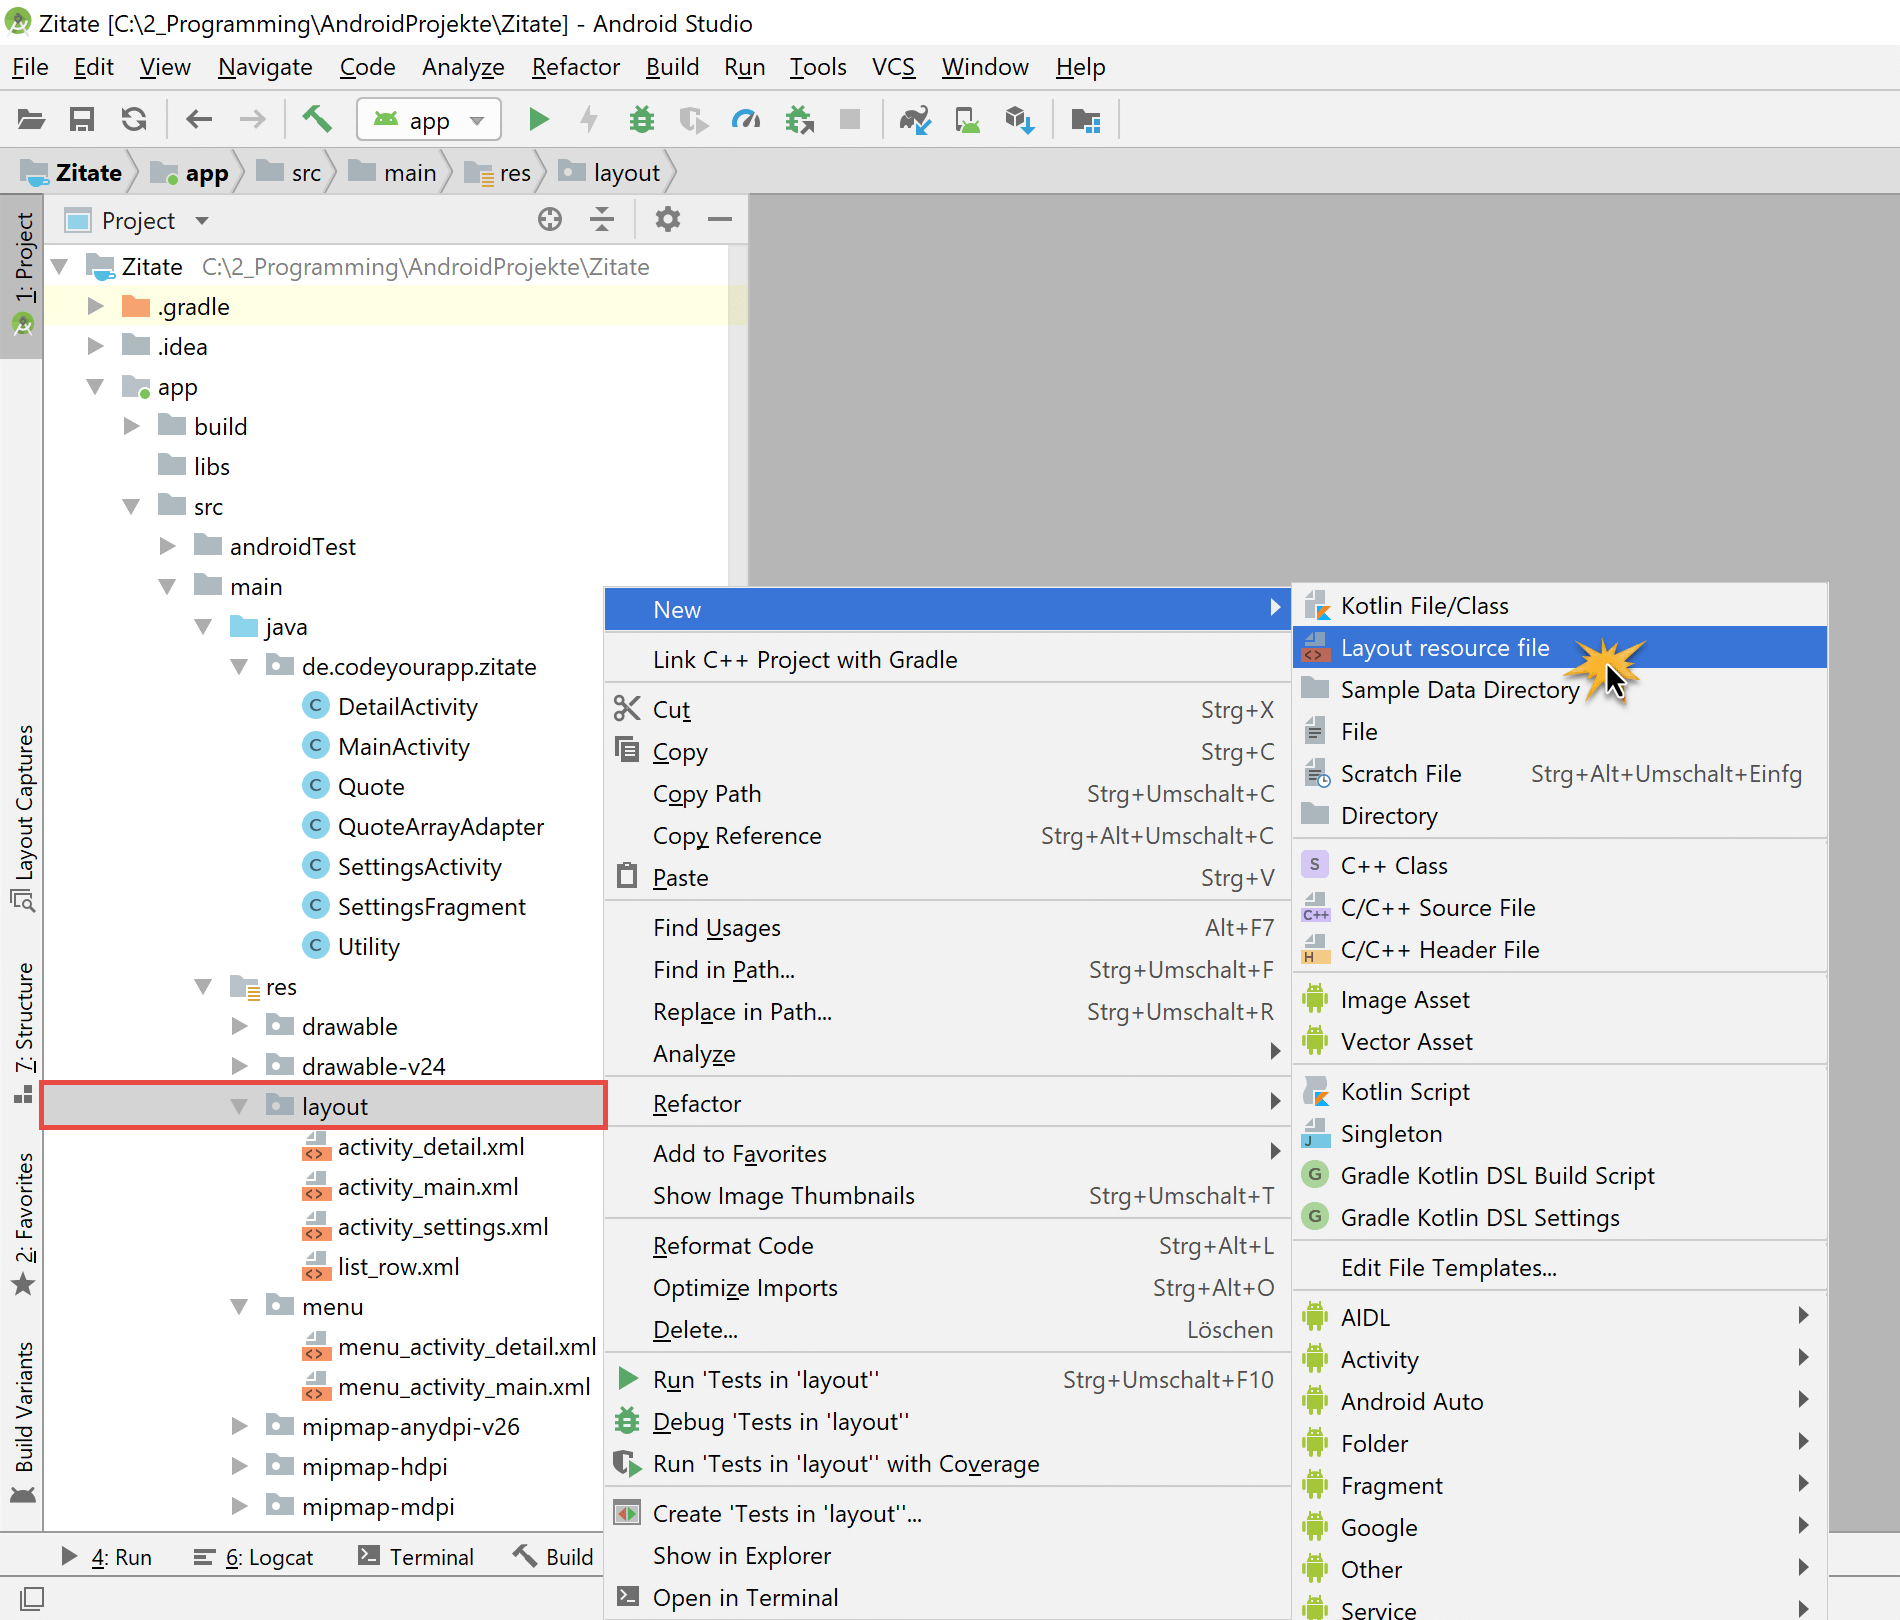 custompreference_dialog_layout